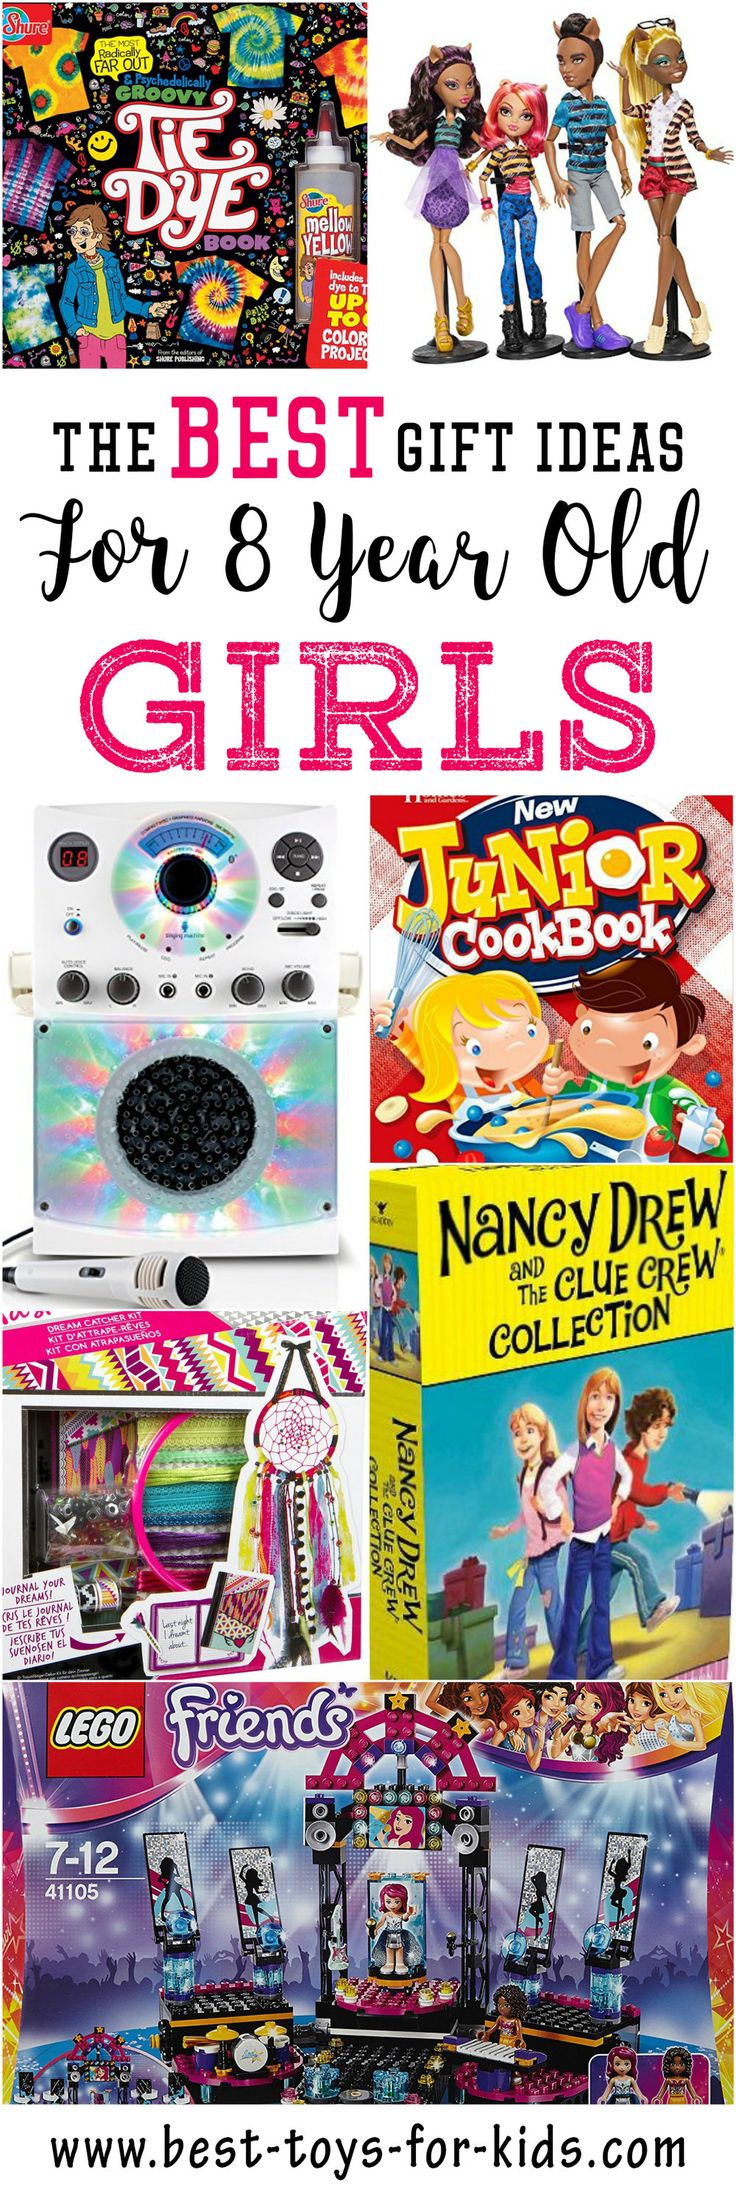 Best Gift Ideas for 8 Year Old Girls | Gifts For All Occasions ...